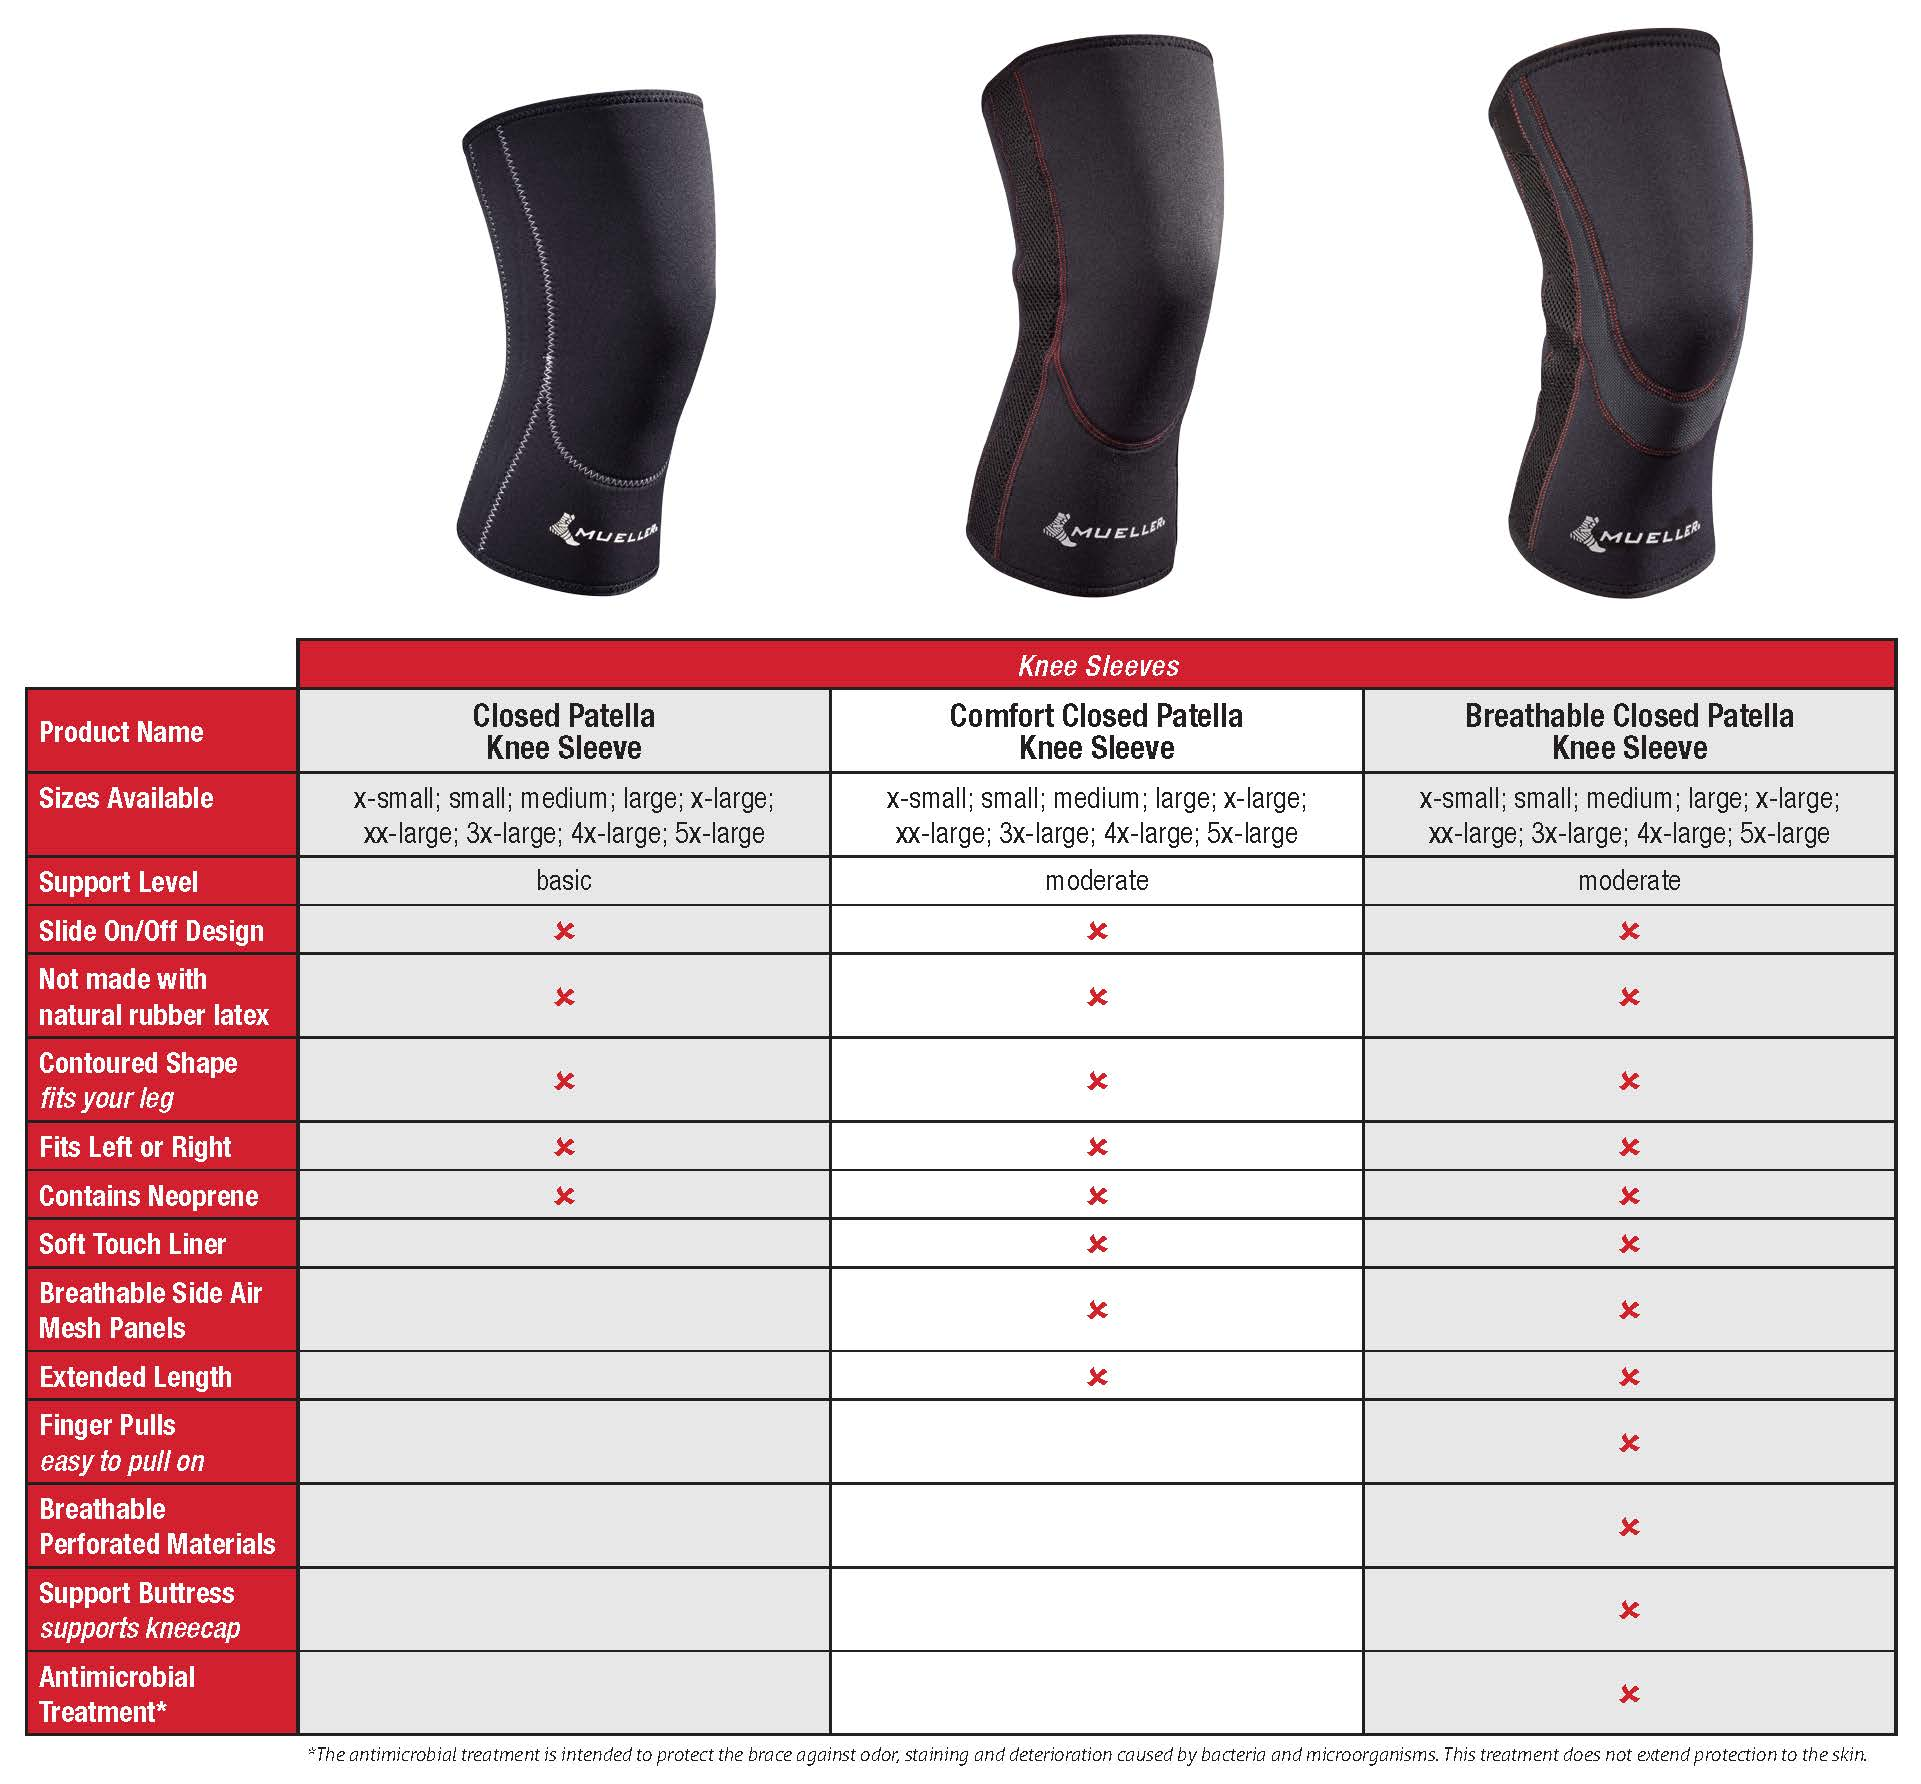 Breathable Closed Patella Knee Sleeve Comparison chart